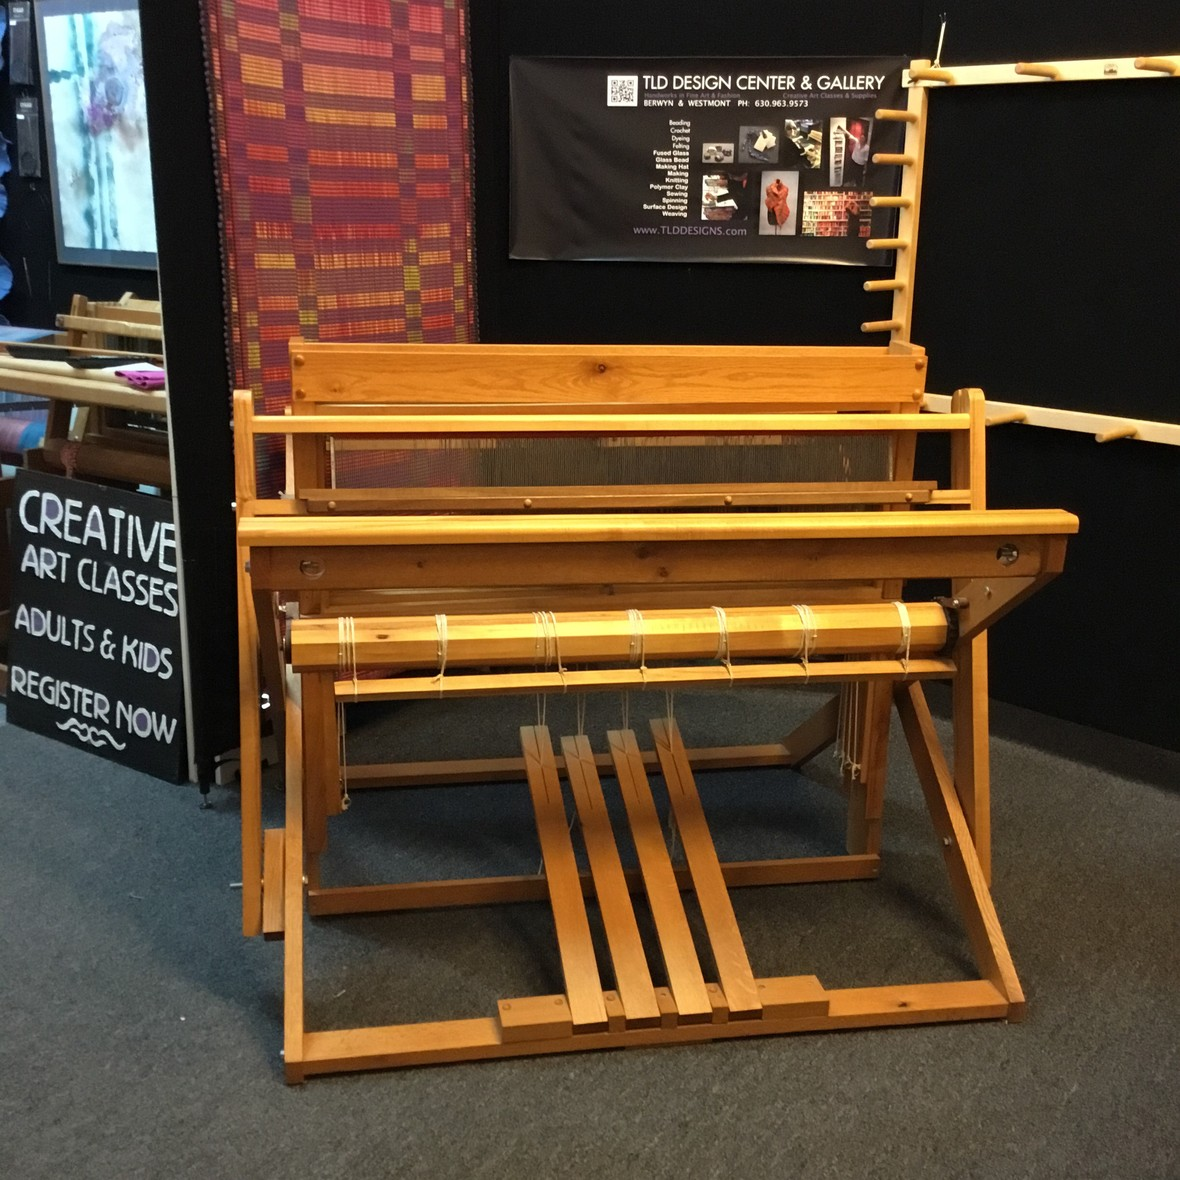 SEIVERS.TLD.USED.LOOM.CHICAGO.WEAVING.SCHOOL.LEARN.TO.WEAVE.ILLINOIS